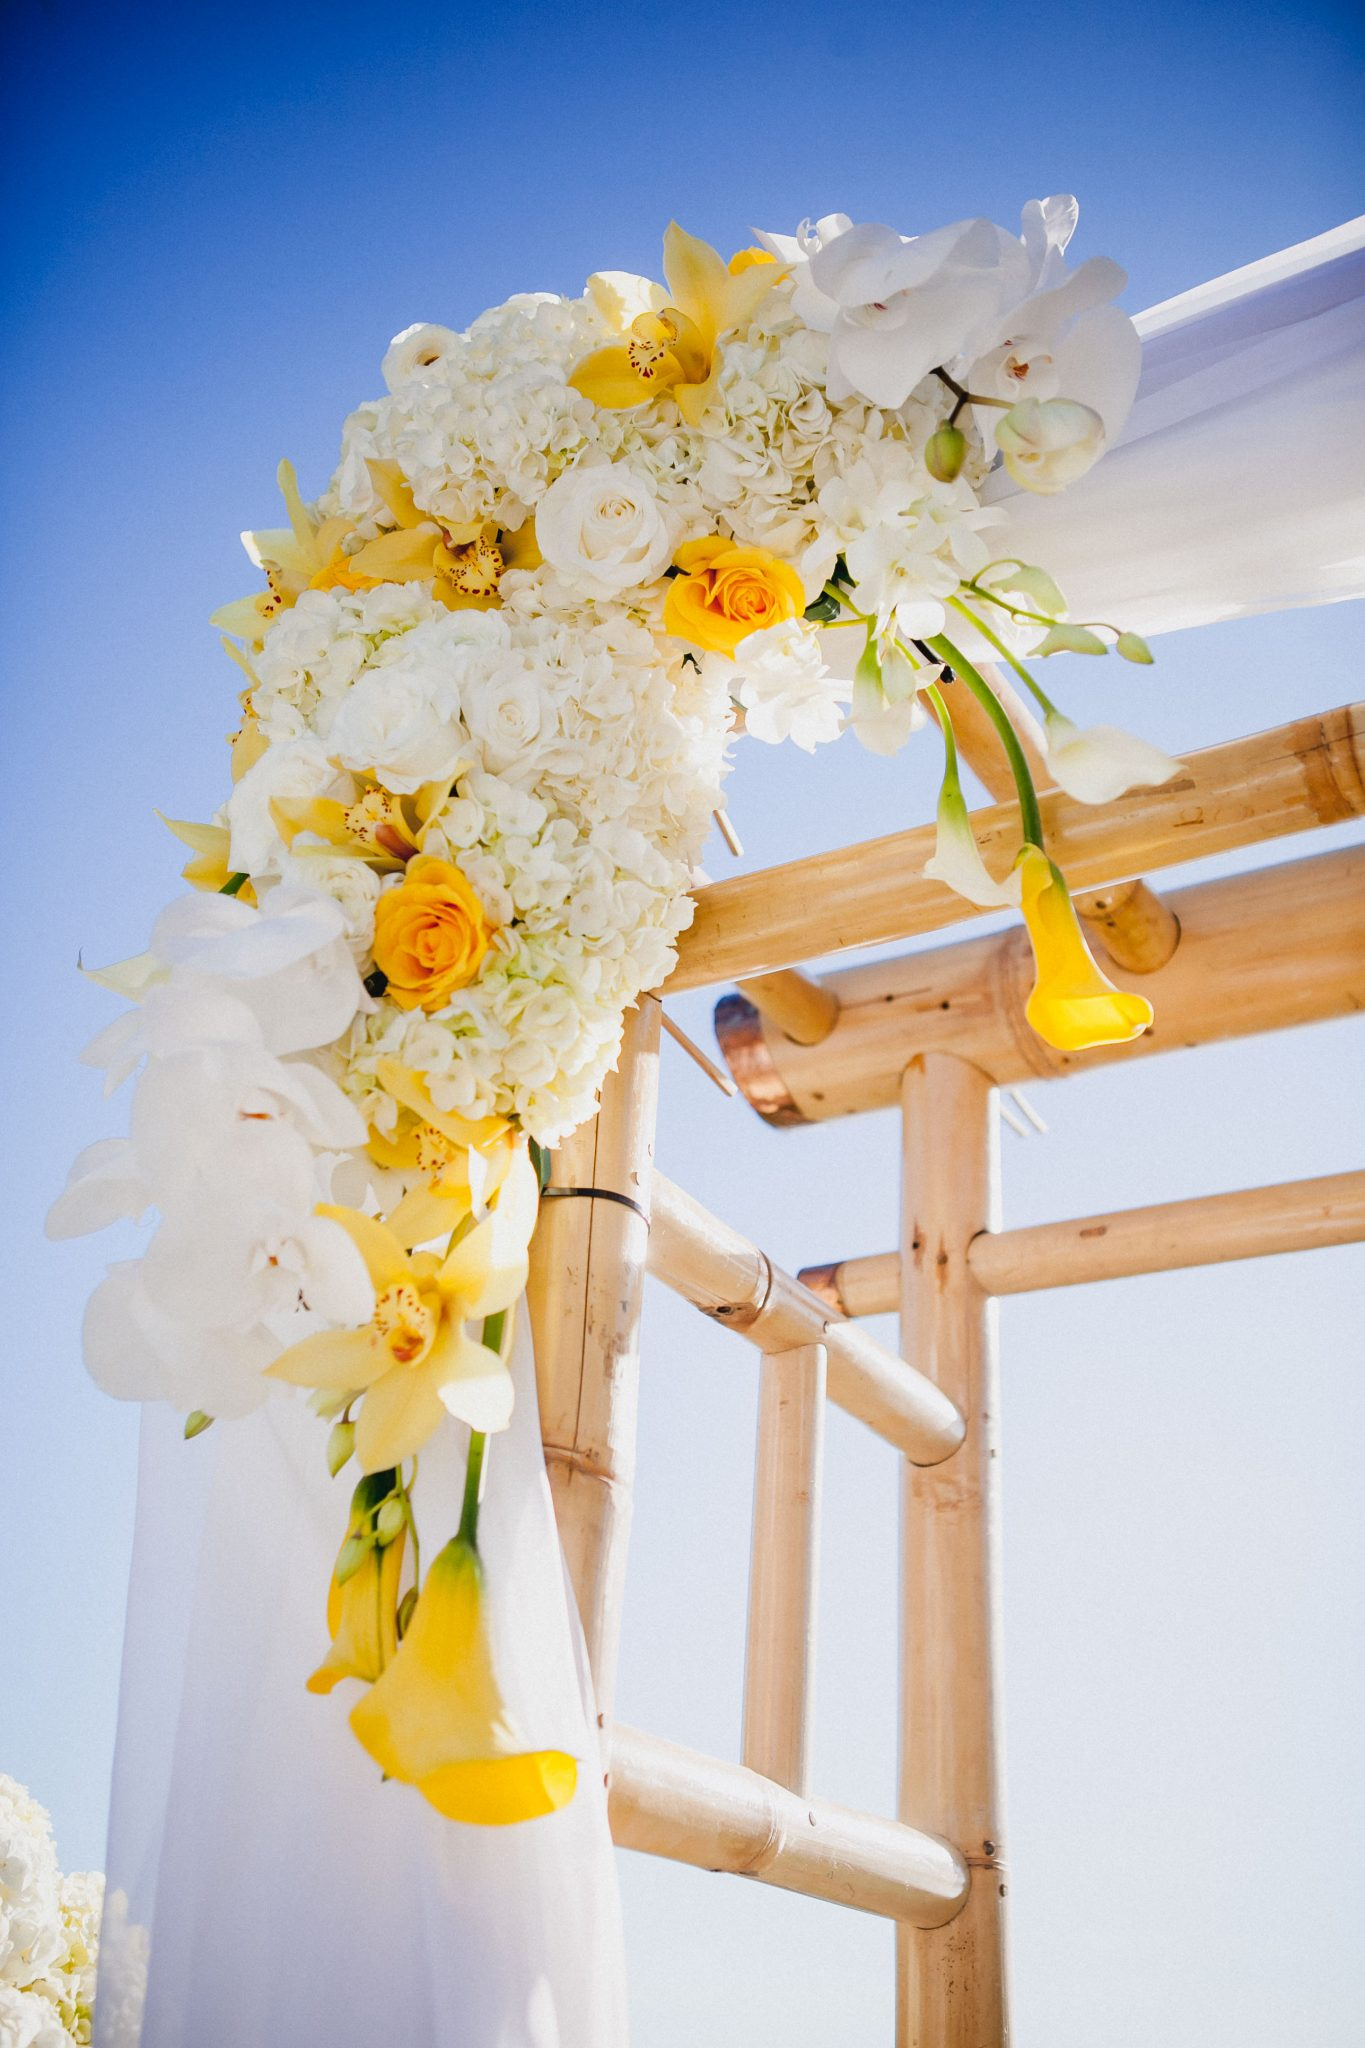 Ceremony wooden arbor detail shot showing yellow and white roses